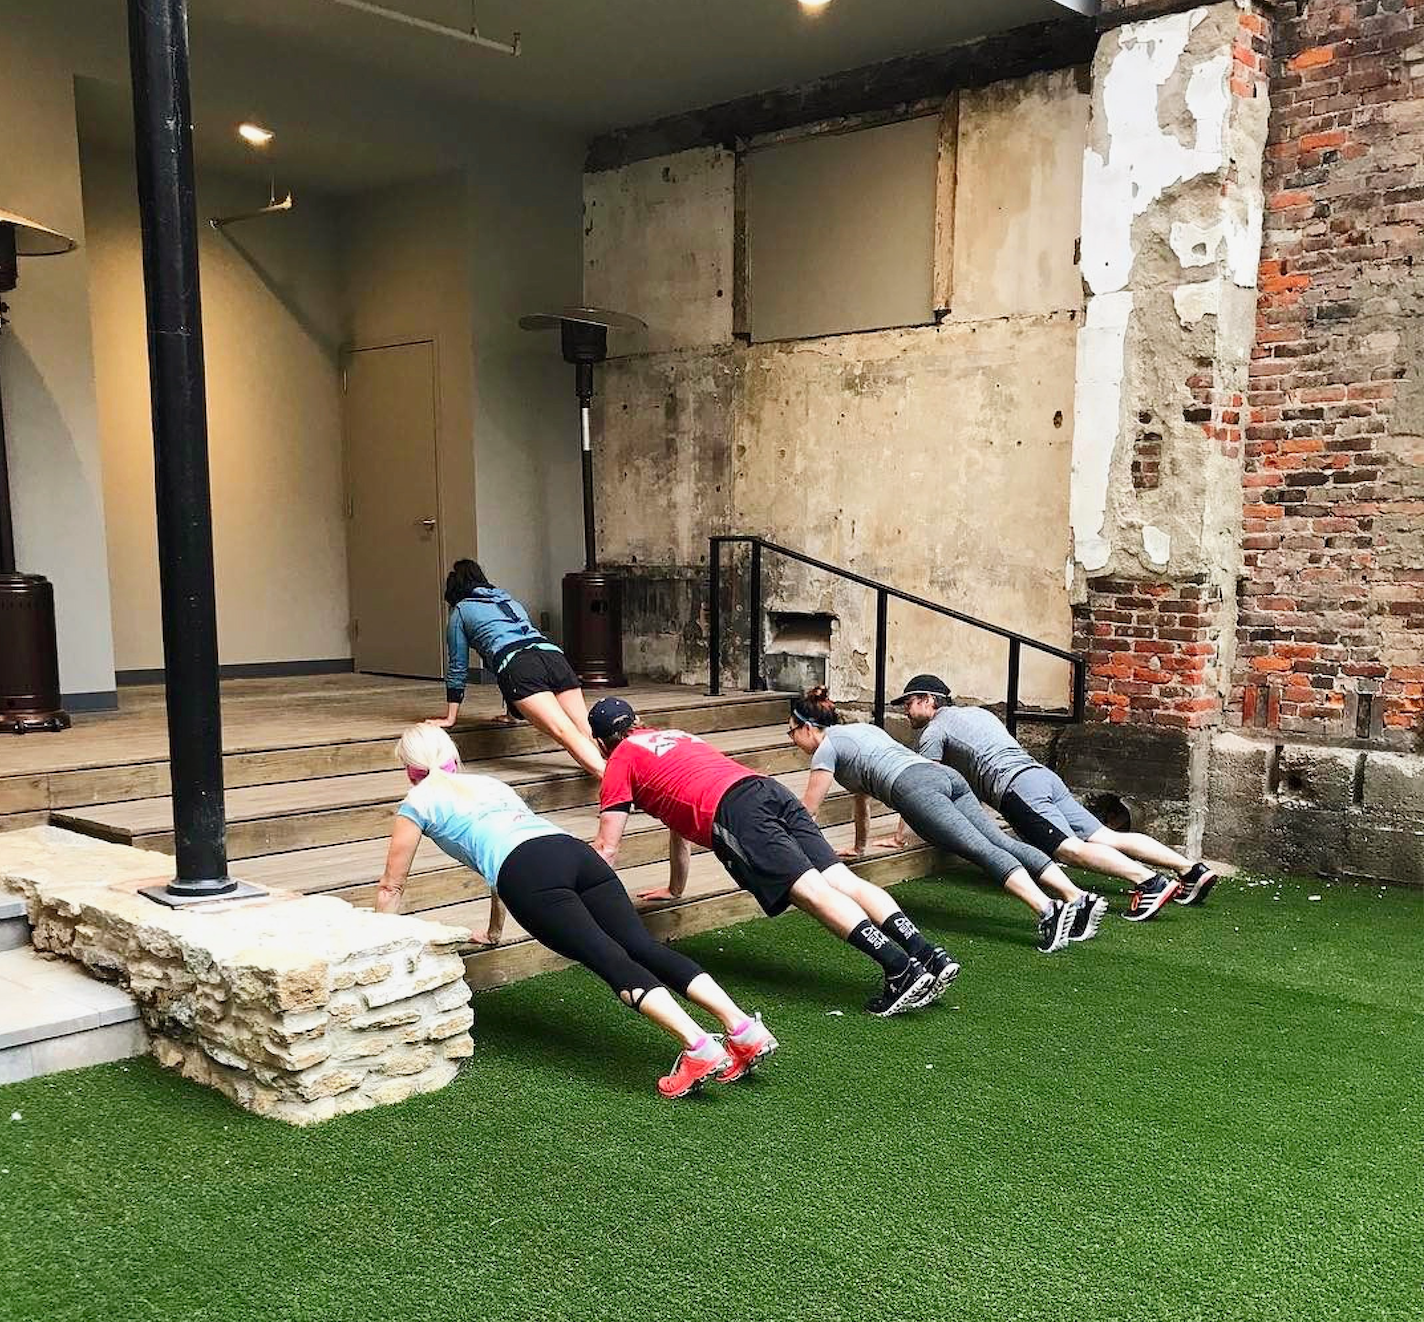 Our Saturday morning workout at  Hotel Covington .  Exercise:  incline planks